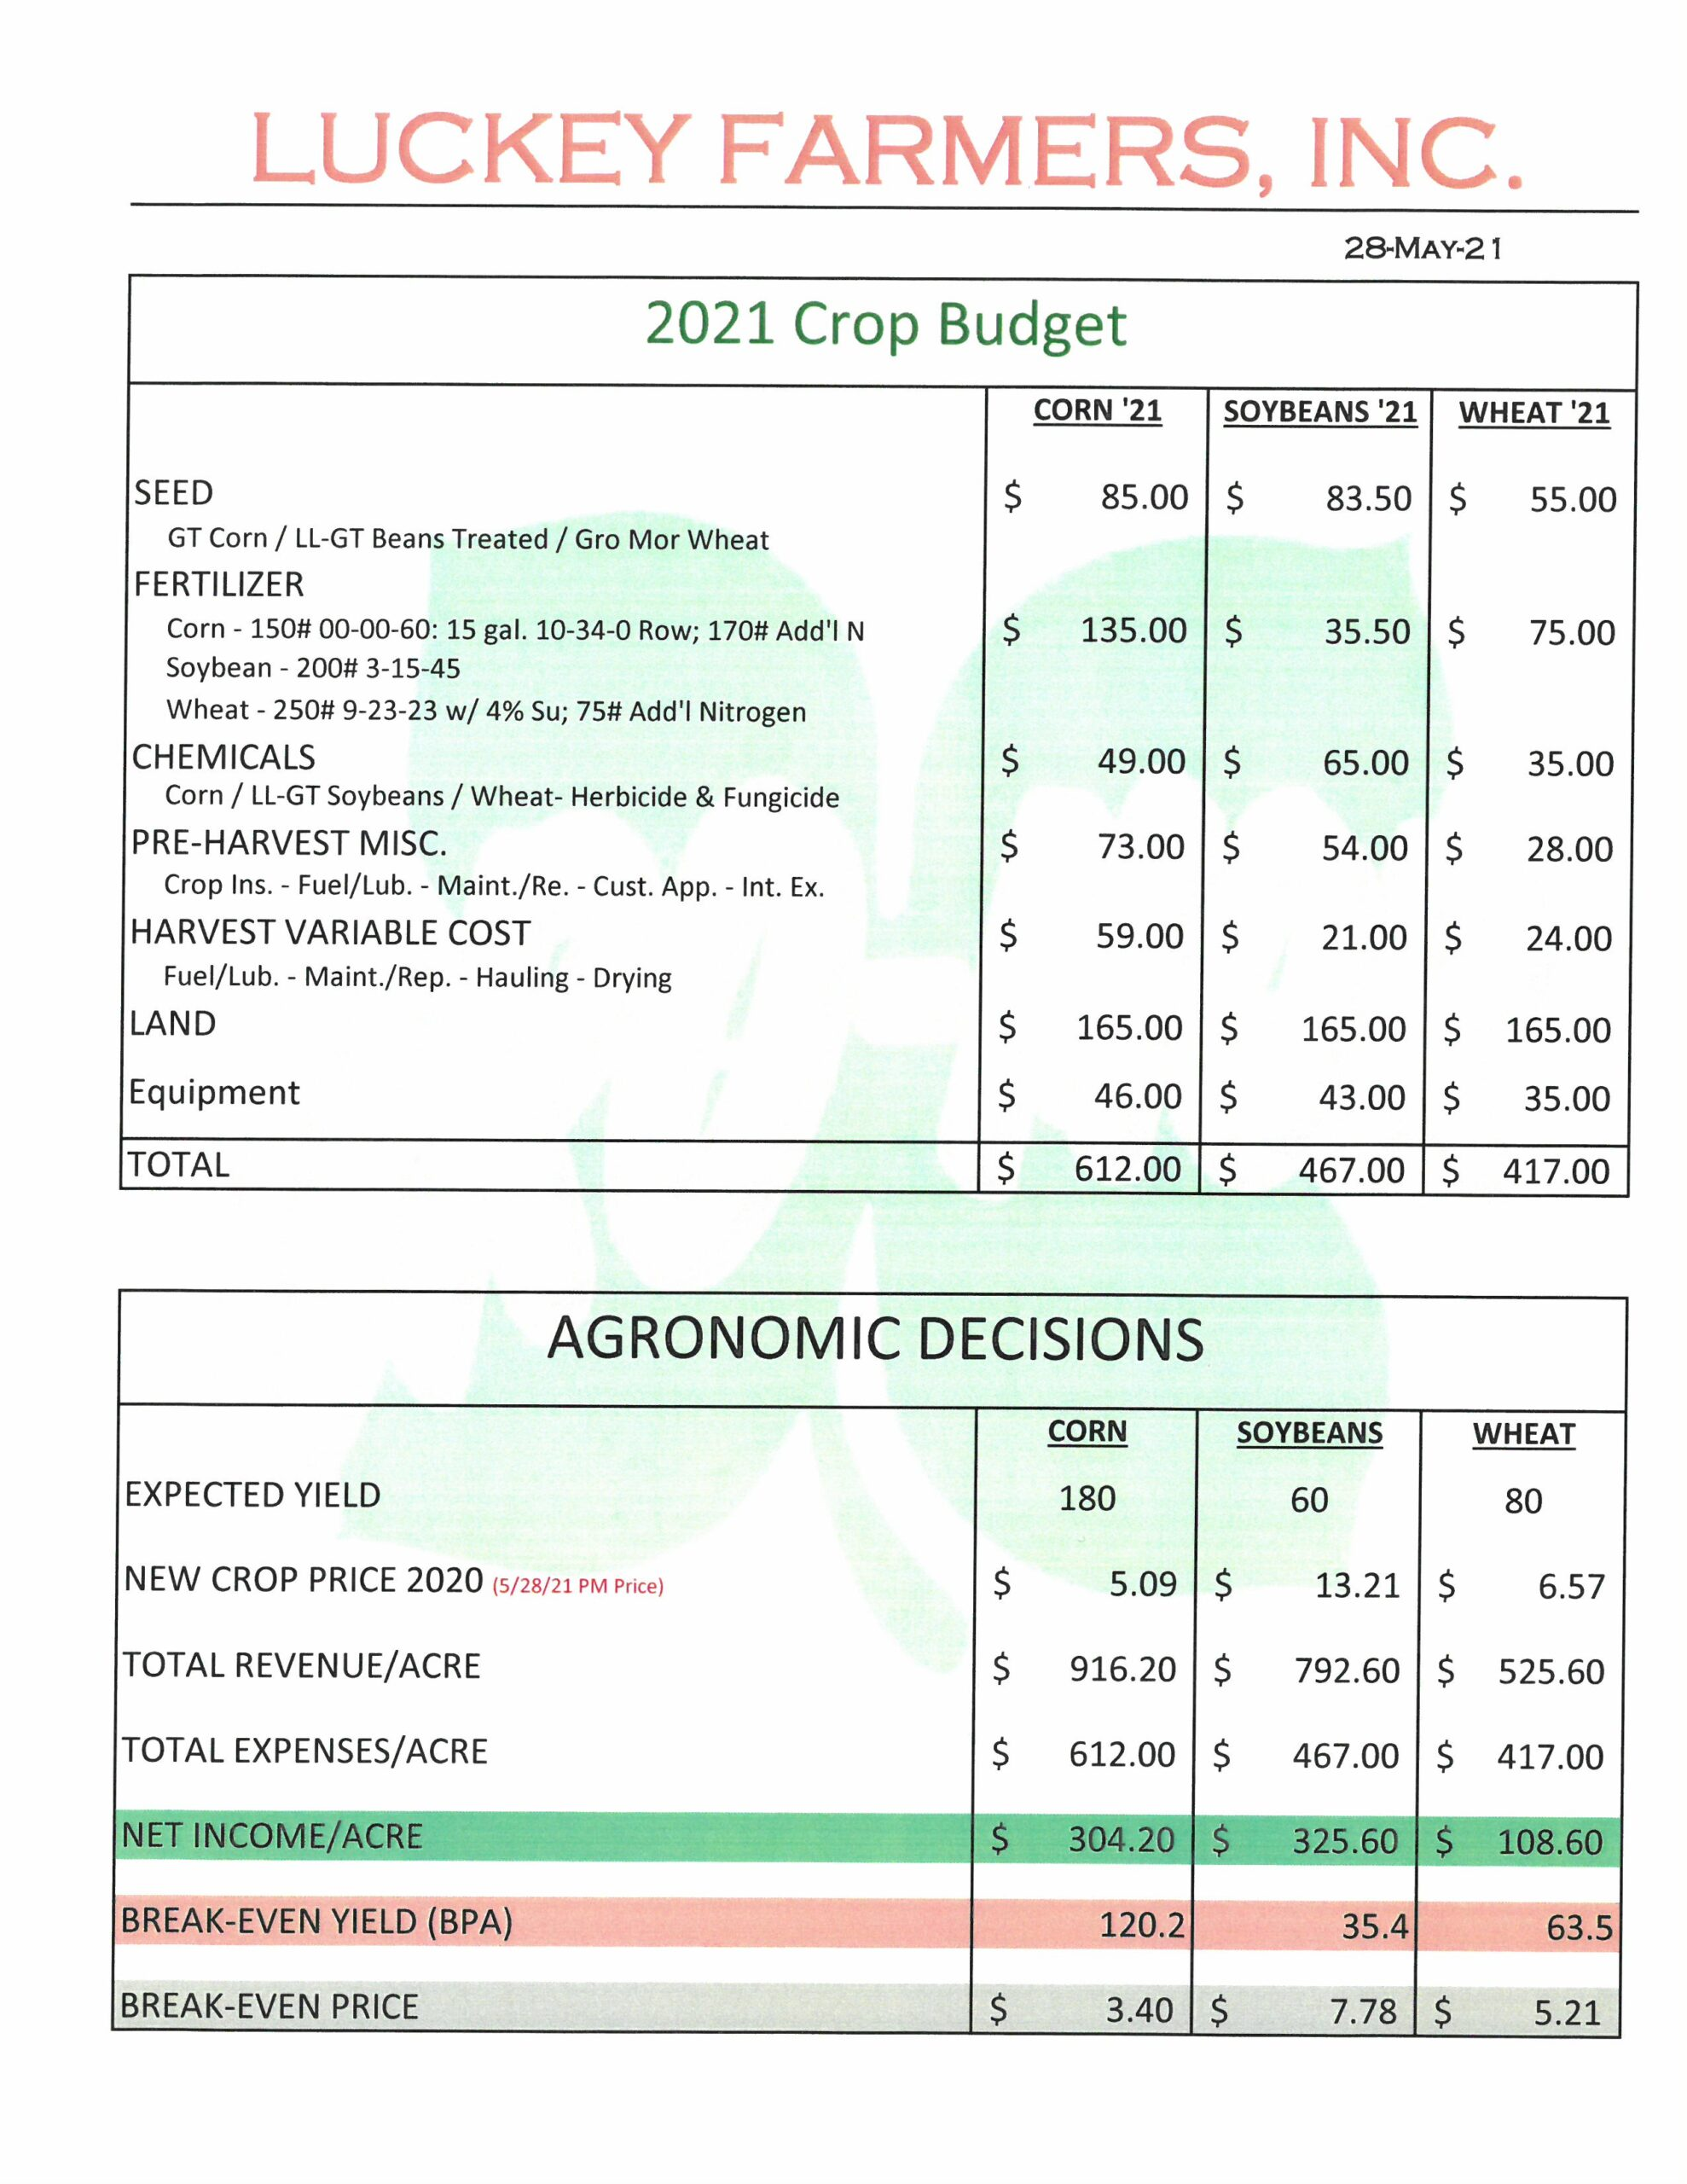 CROP BUDGETING AND REPORTS